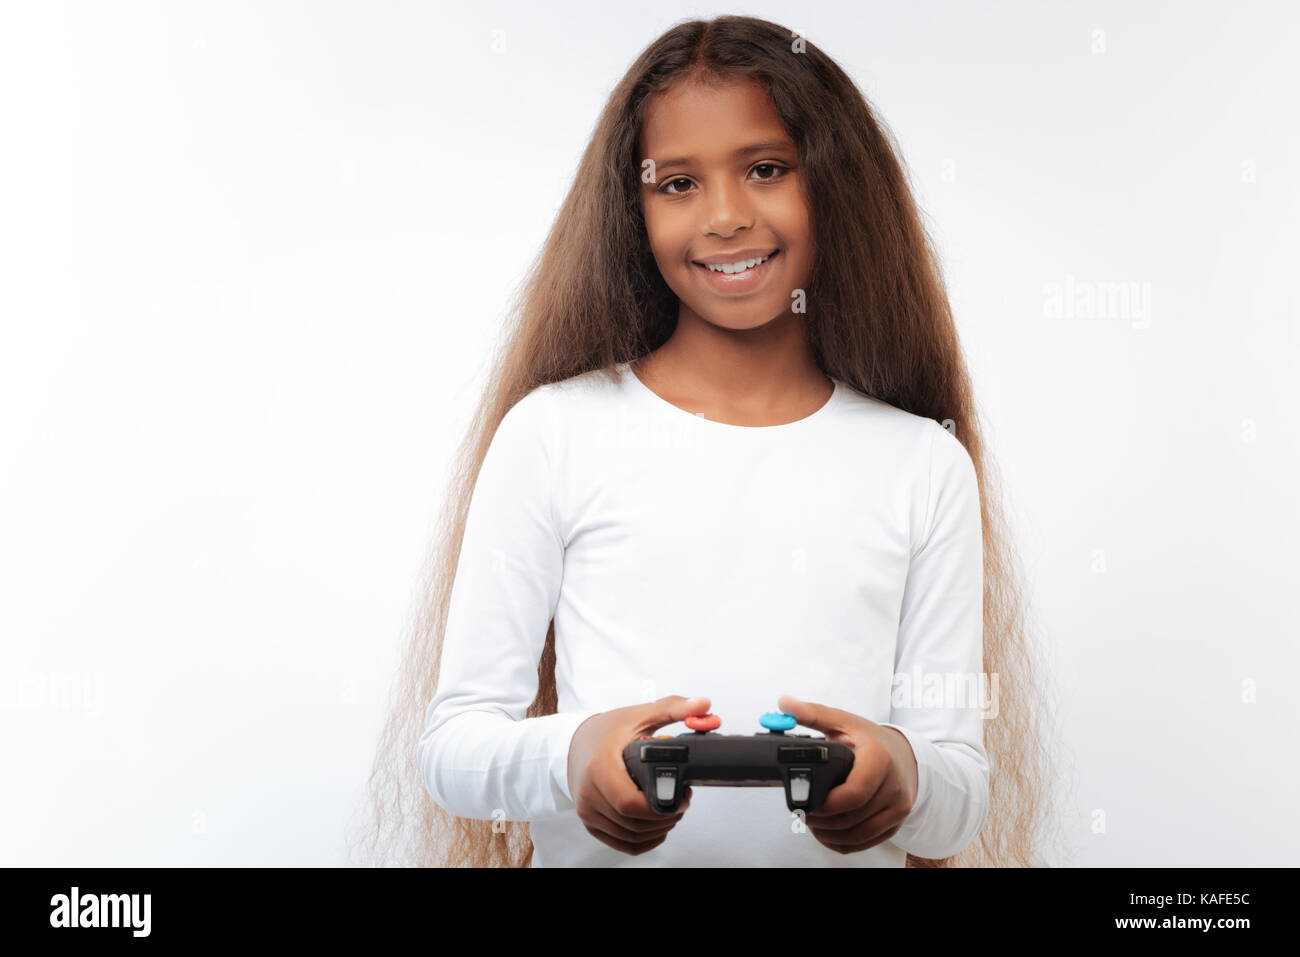 Pleasant pre-teen girl holding video game controller - Stock Image